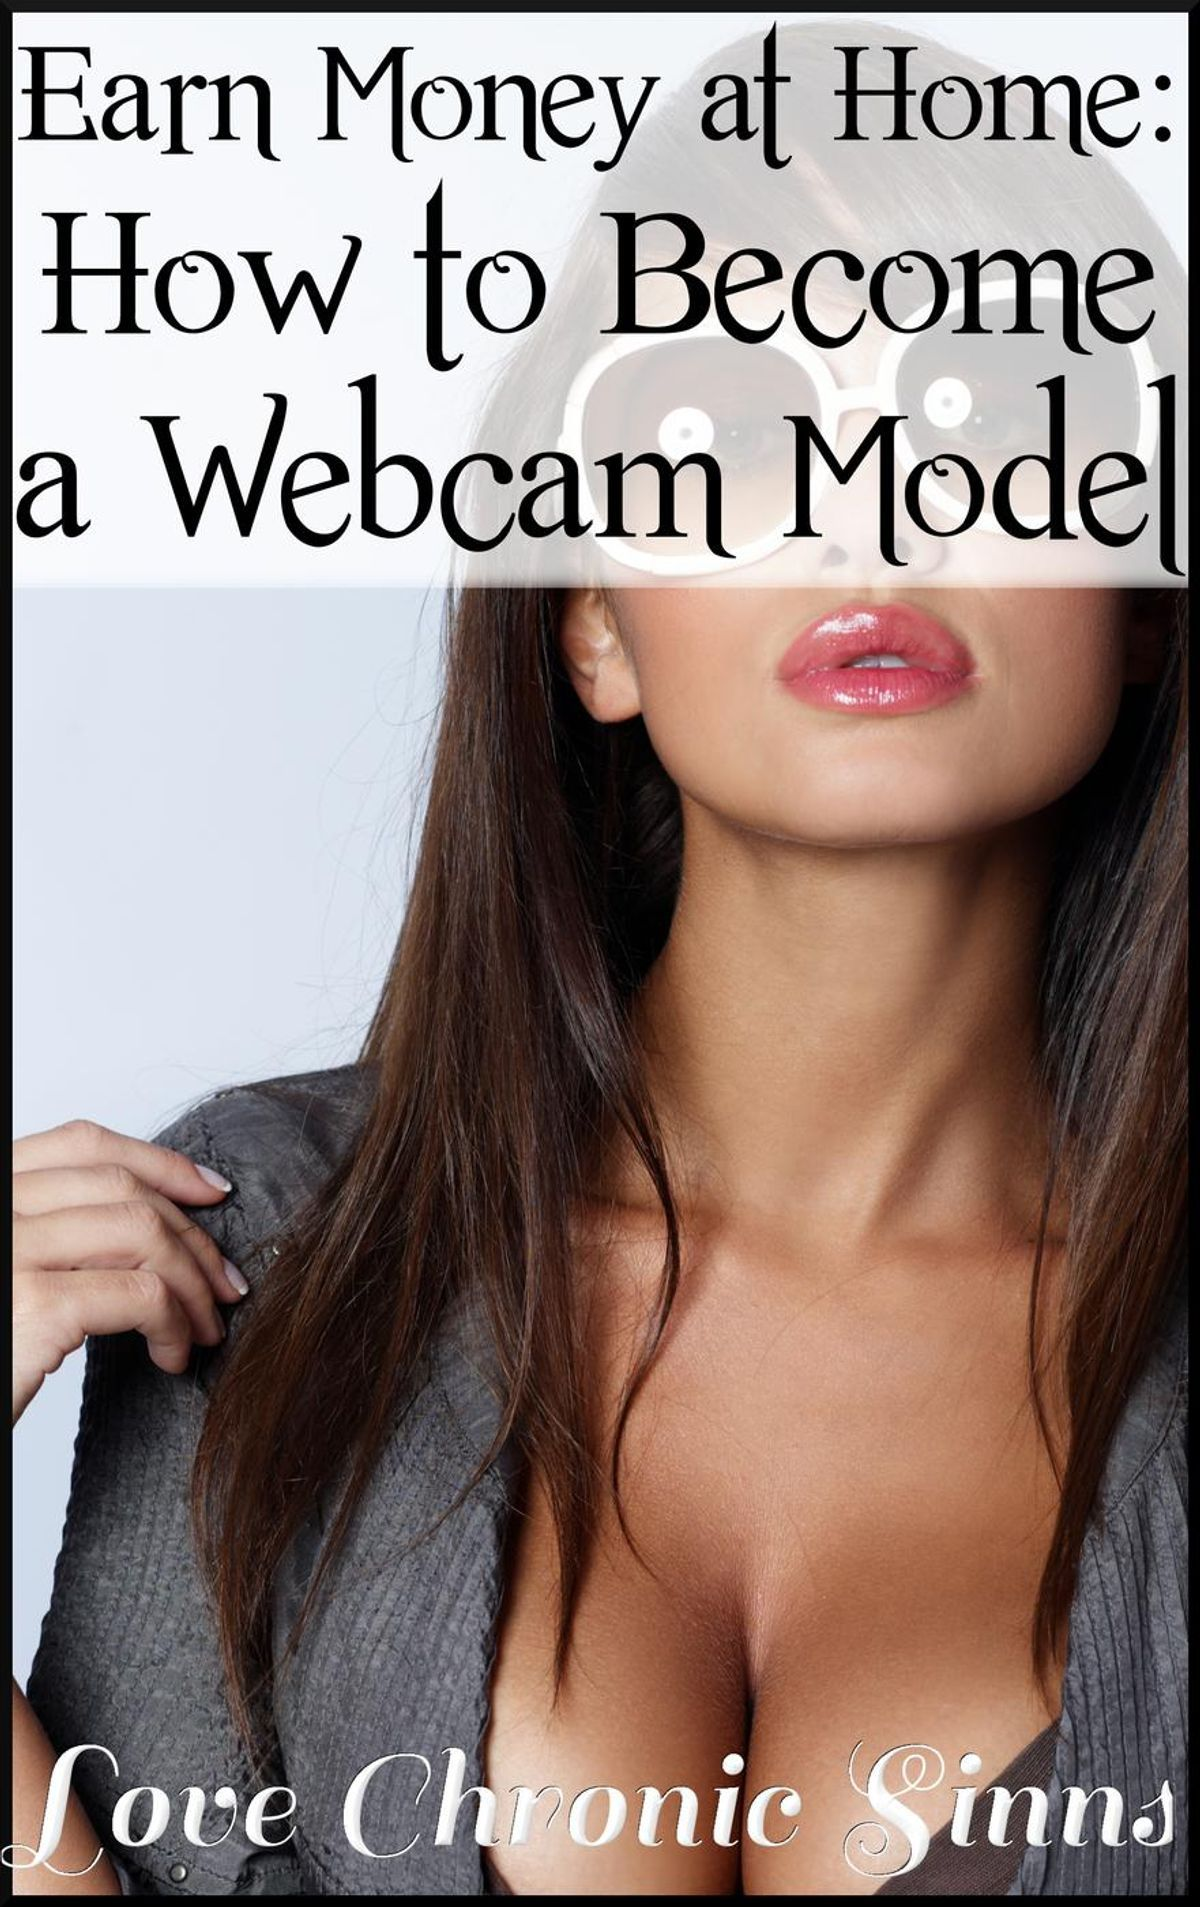 How To Make Money Doing Webcam Shows